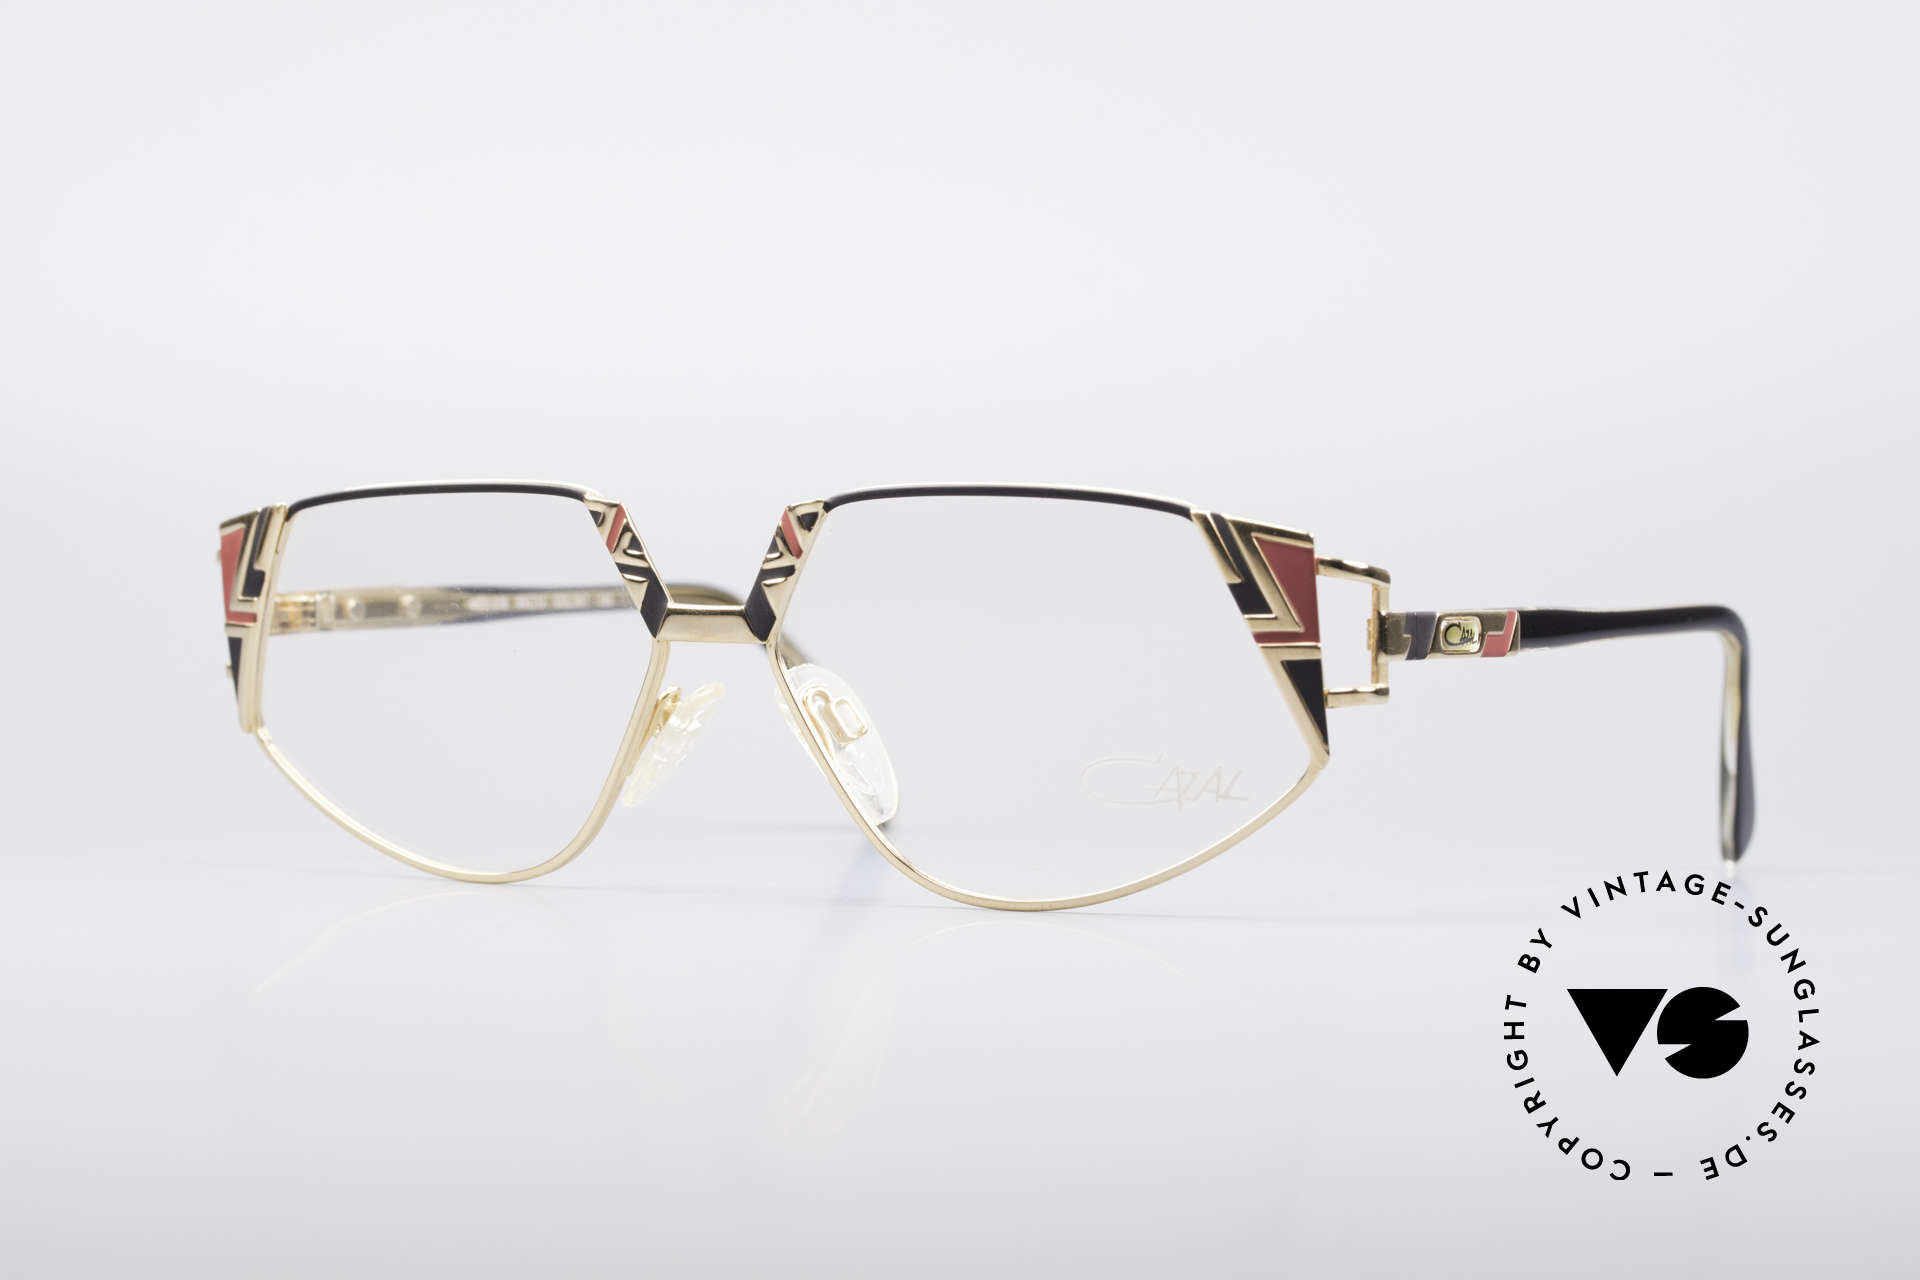 Cazal 238 Cateye Vintage Glasses, interesting vintage Cazal glasses of the early 1990's, Made for Women